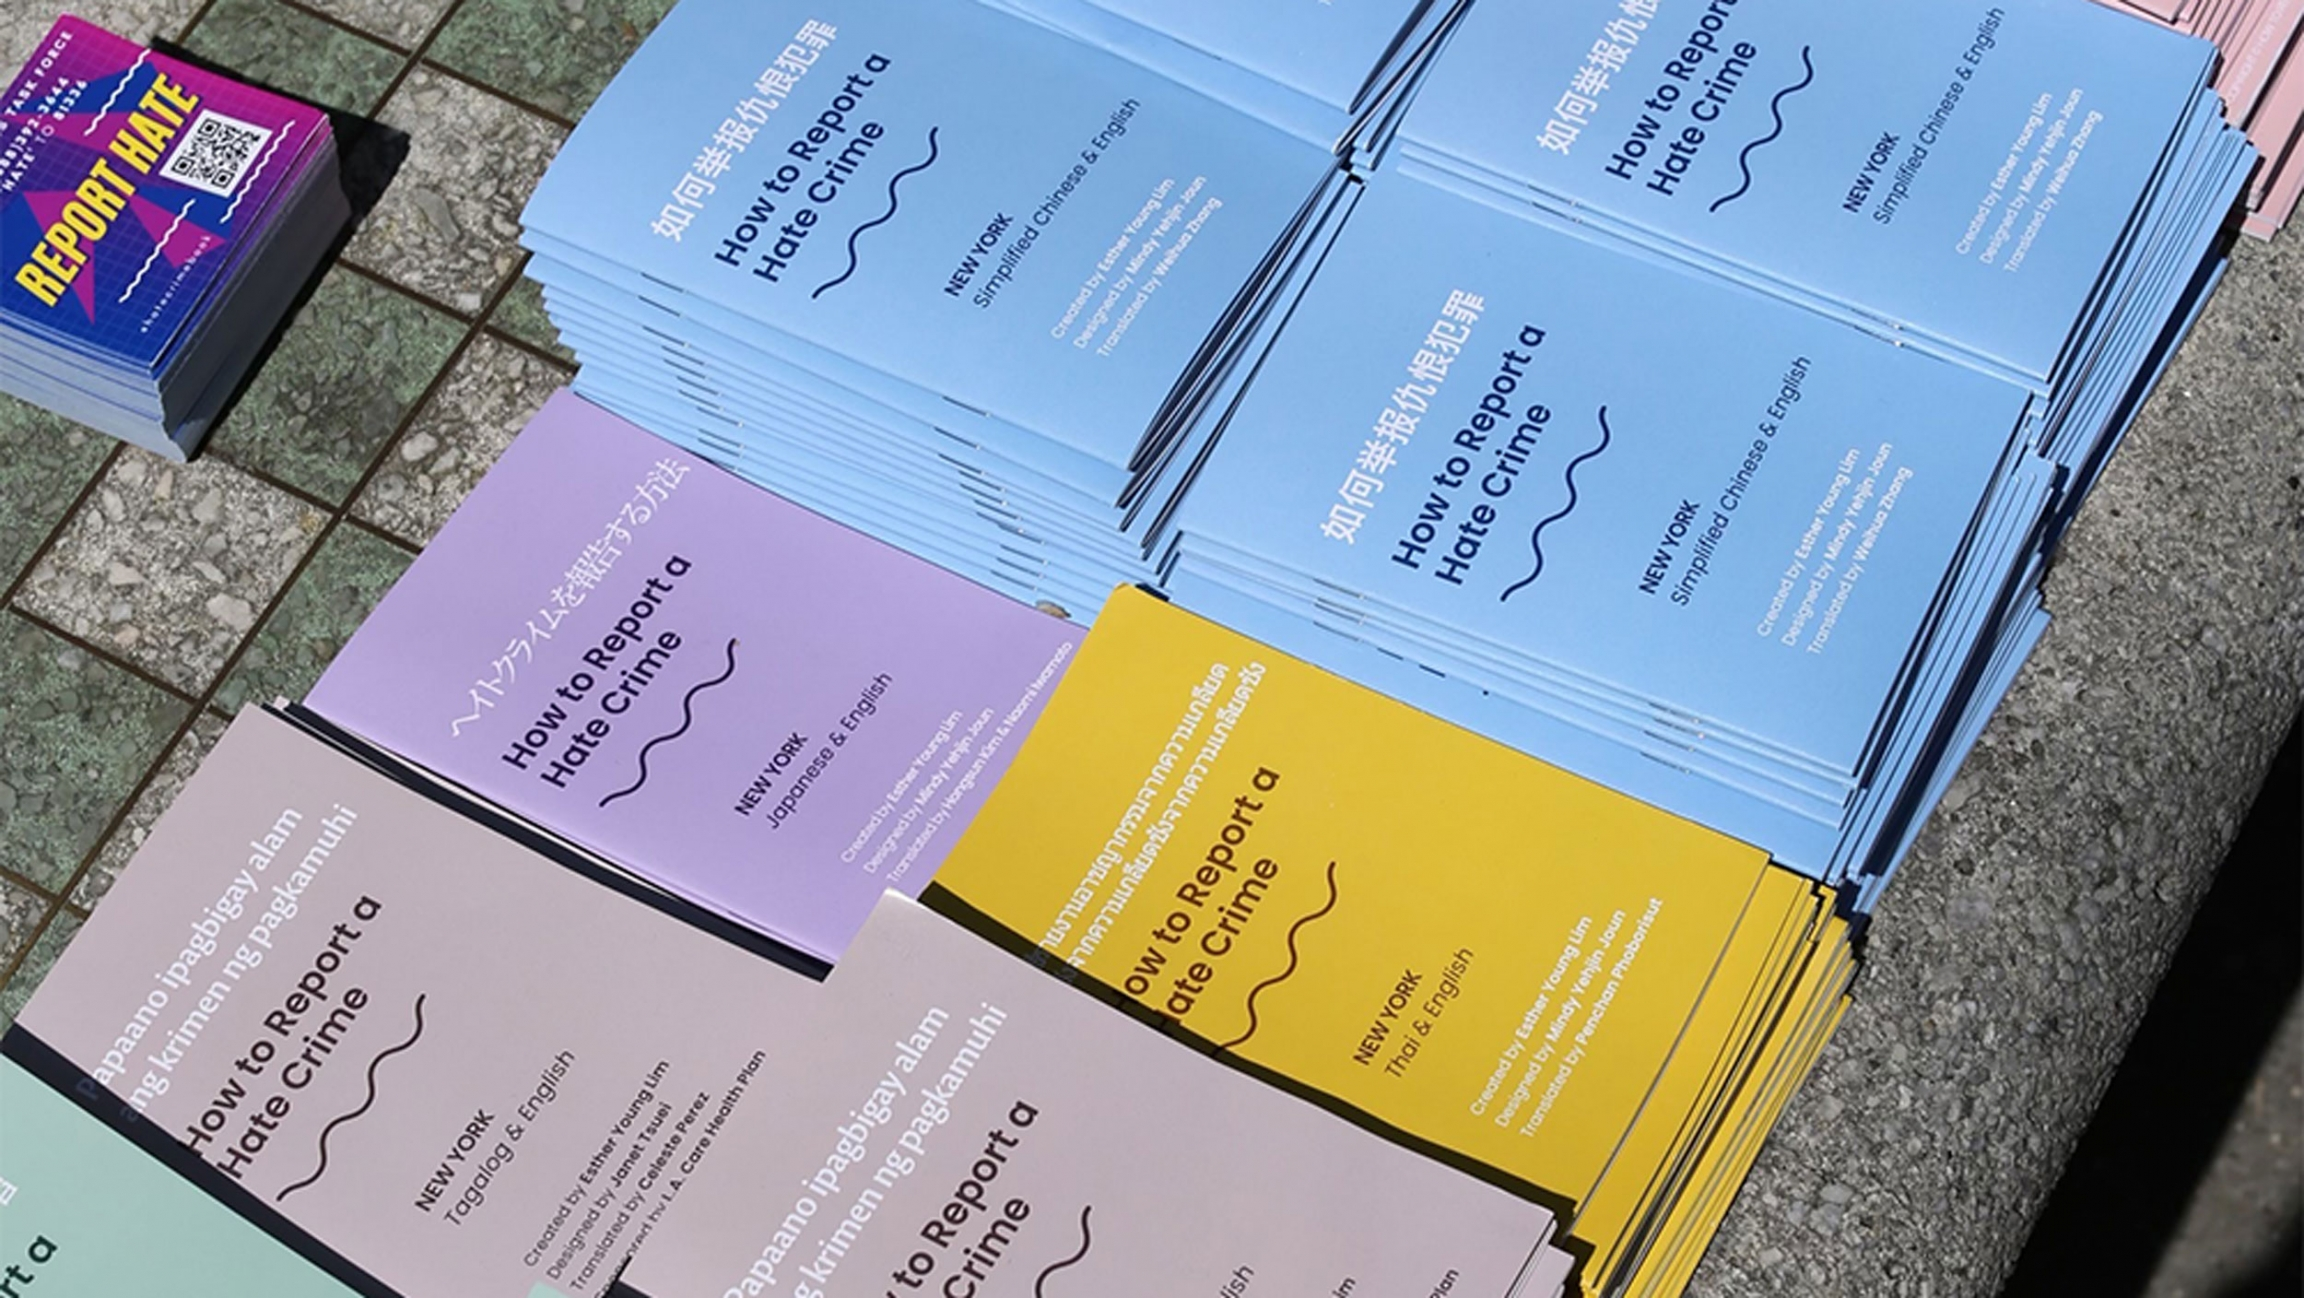 Colorful booklets in Asian languages on 'How to Report a Hate Crime'